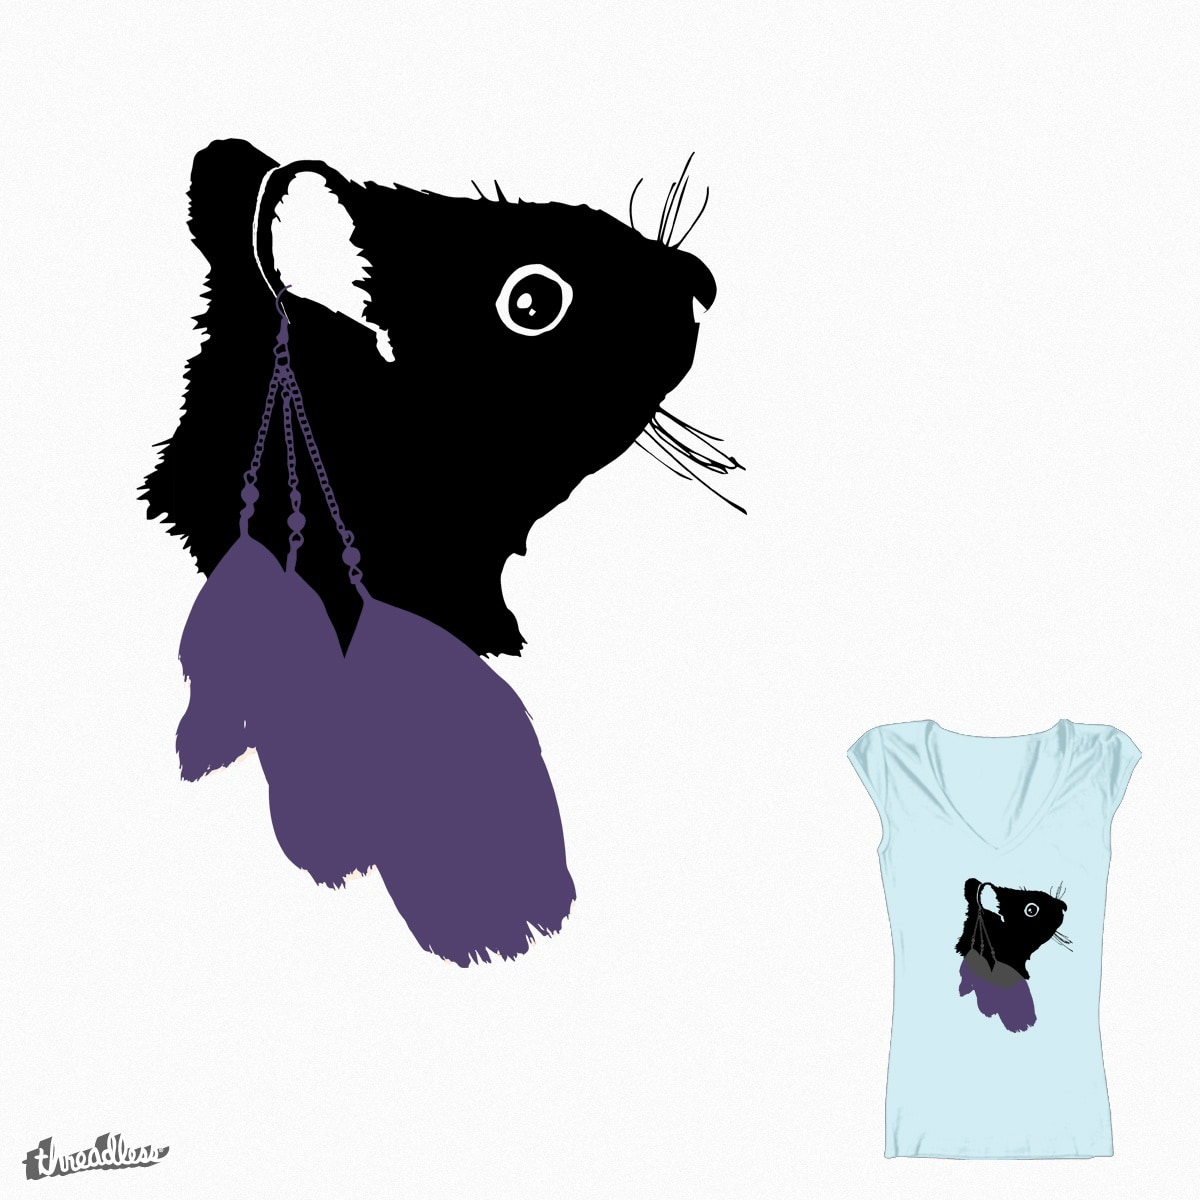 Feathered Squirrel by jenna91 on Threadless